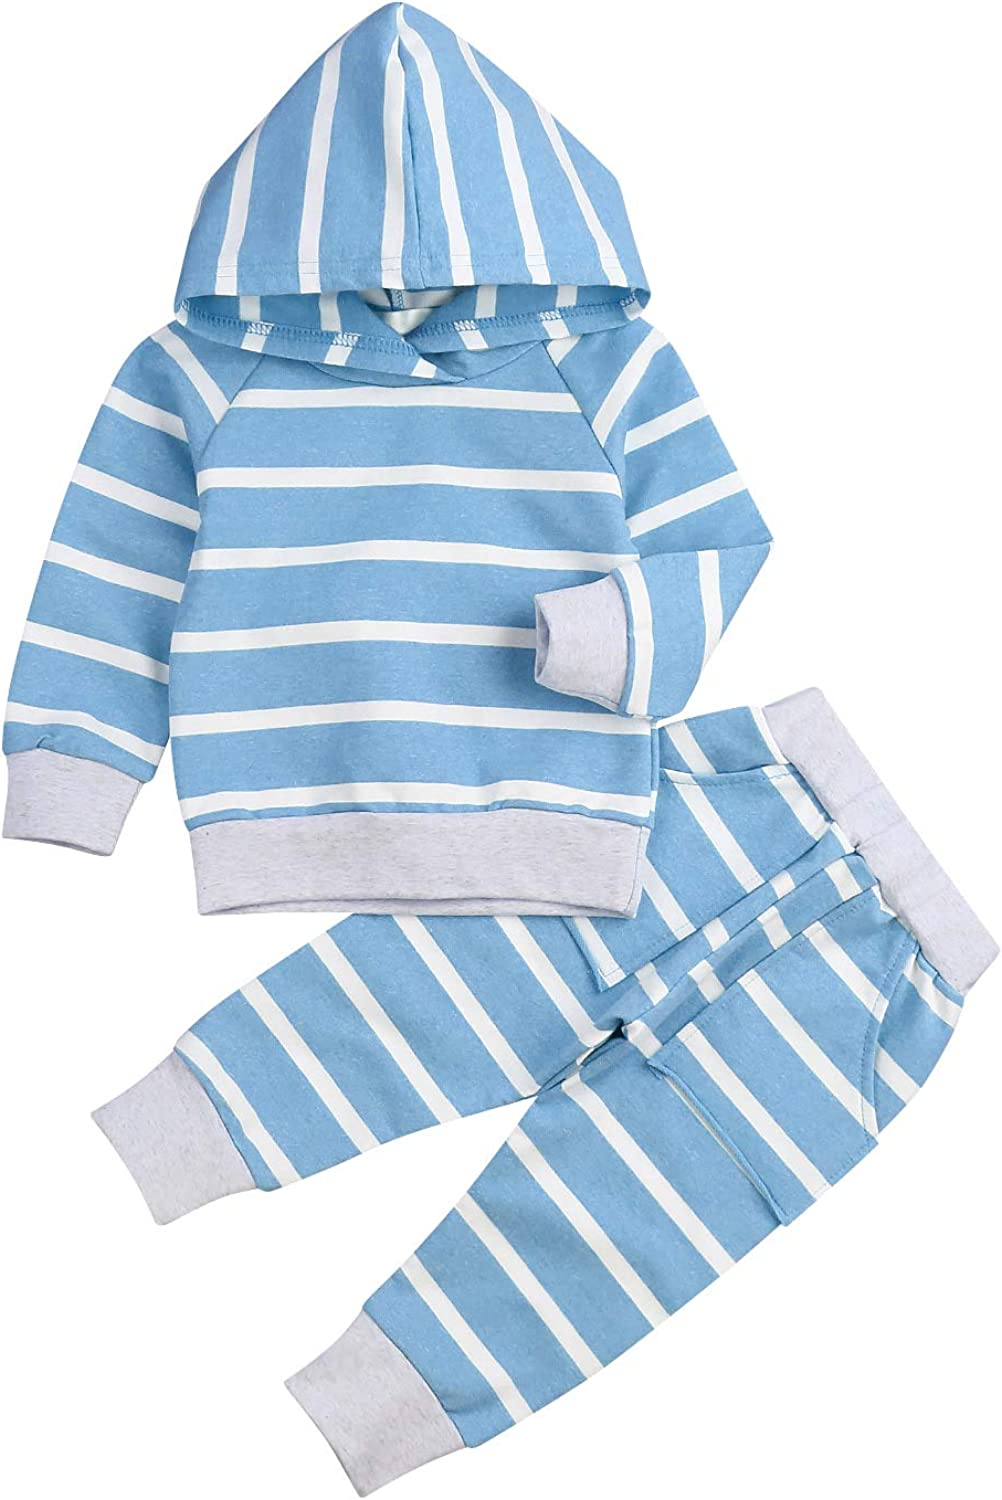 Baby Girls Boys Winter Clothes Set Long Sleeve Striped Hoodie Sweatshirt Pants Outfit Sets for Infant Toddler